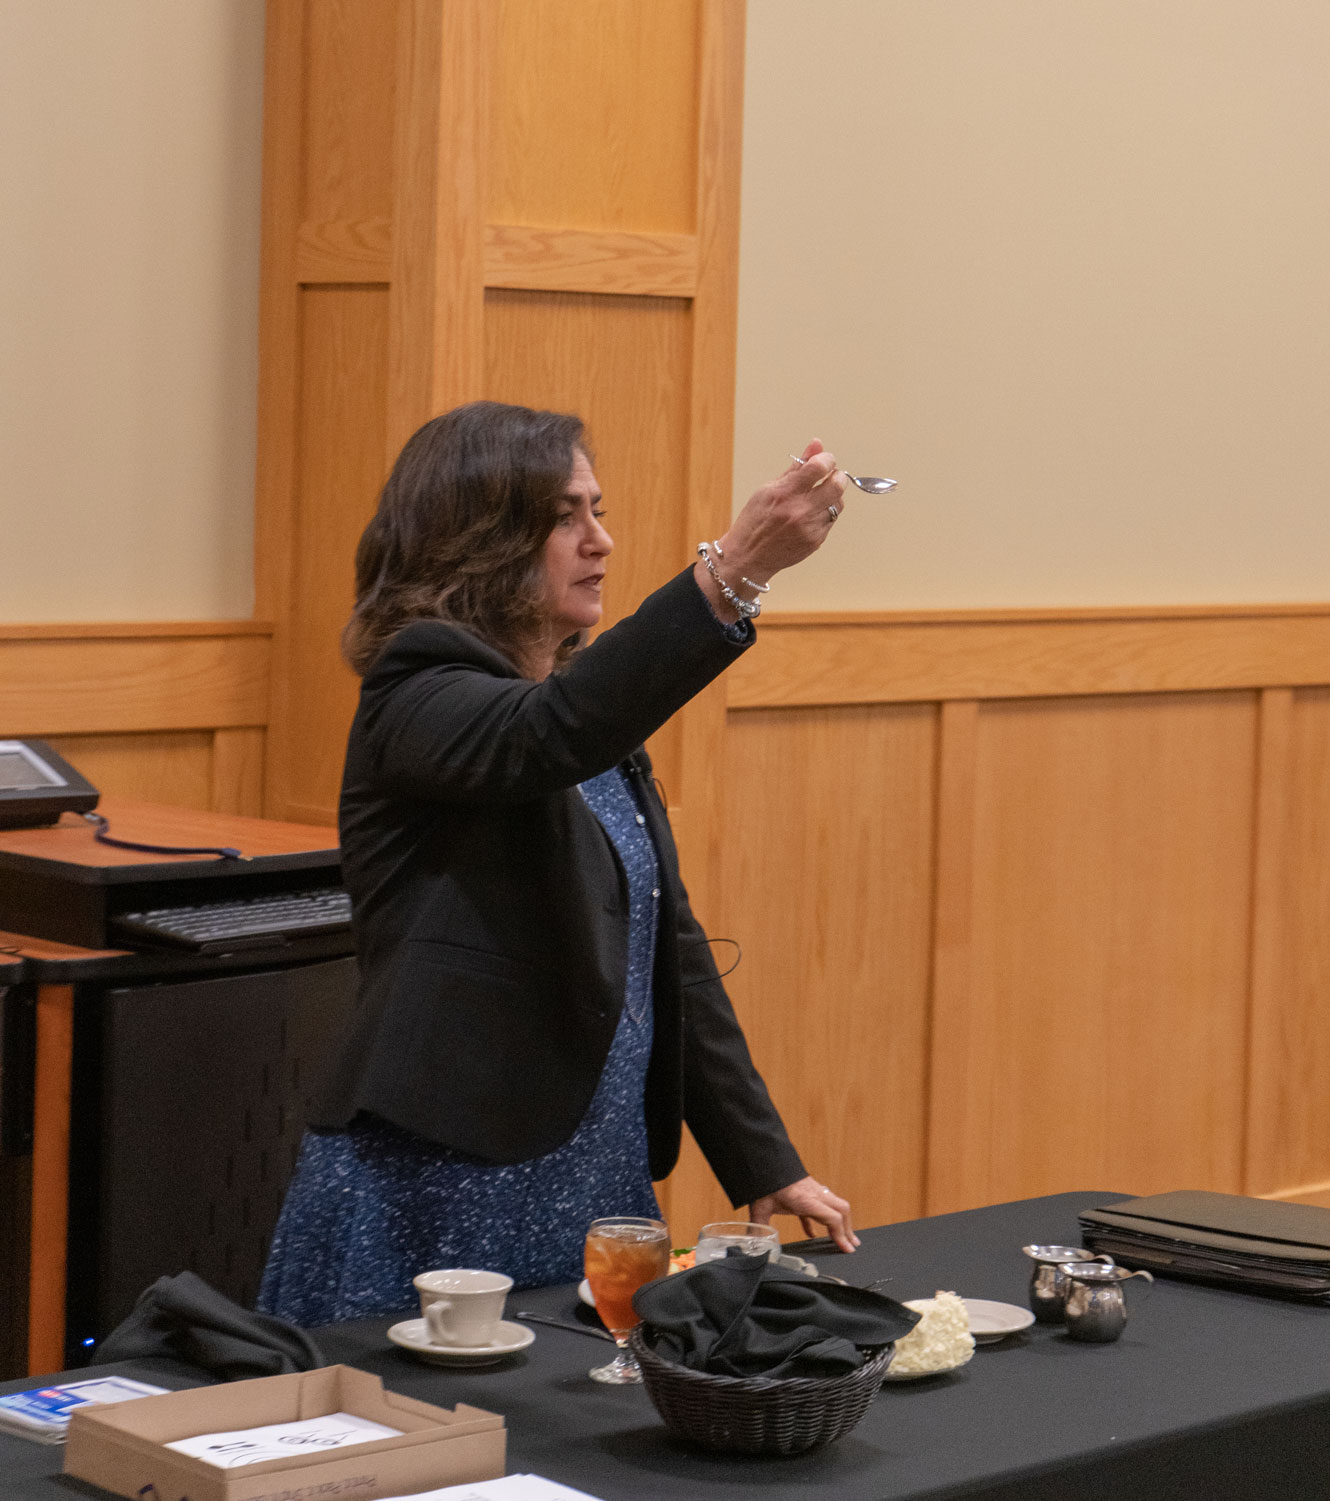 Mary+Starvaggi+holds+up+a+spoon+for+the+audience.+She+demonstrated+the+proper+use+of+every+utensil+on+the+table+during+the+lecture.